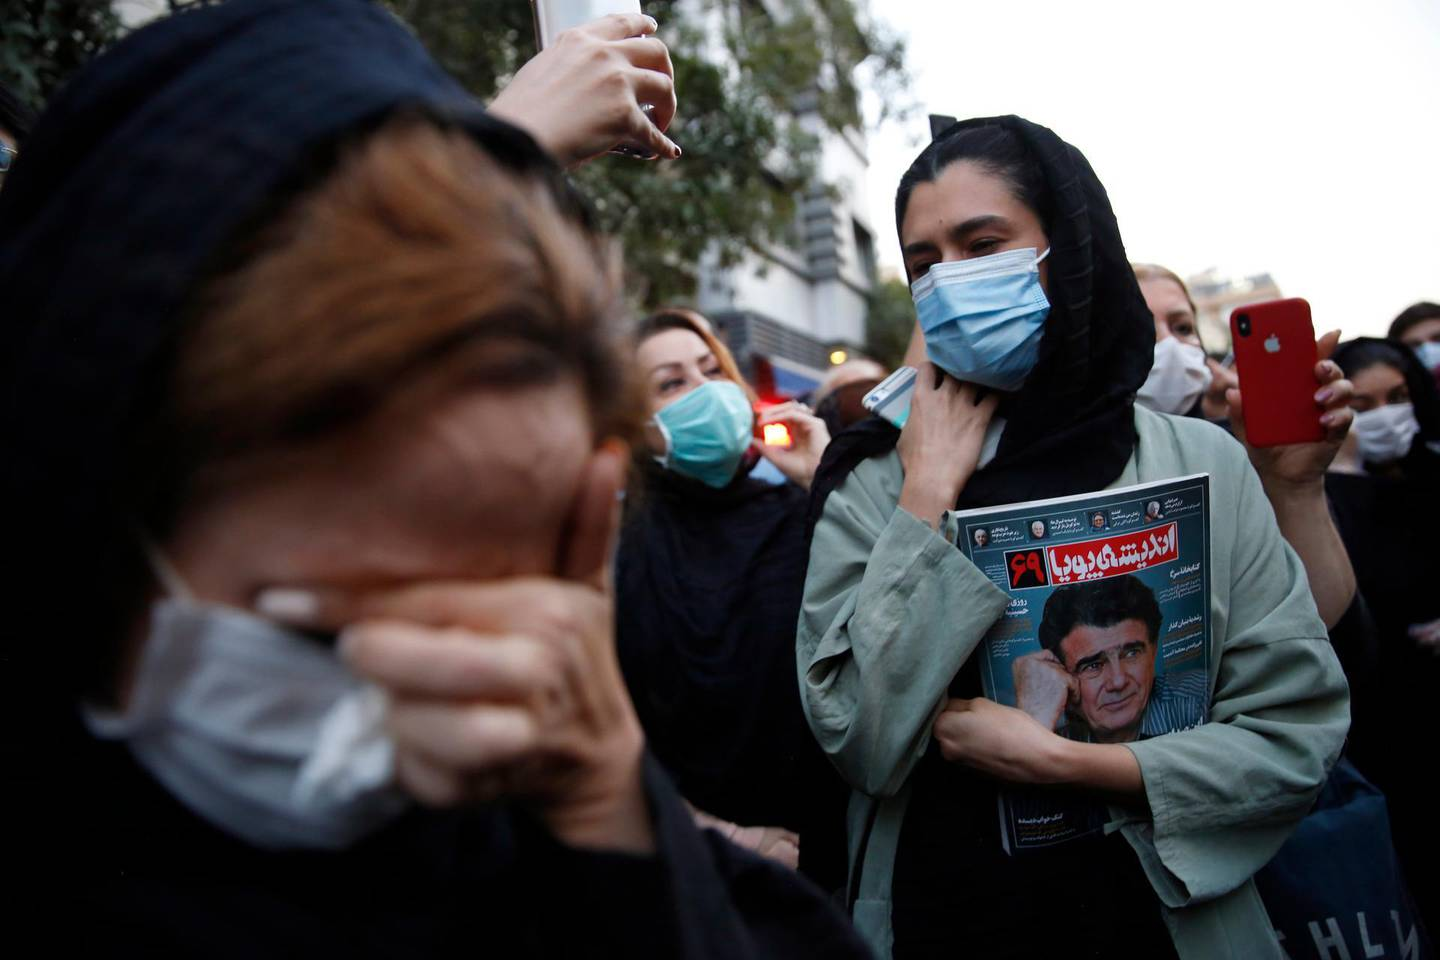 epa08729608 Female fans of Iran's legendary singer, instrumentalist, and composer Mohammad-Reza Shajarian, with one holding a picture of him, mourn in front of the Jam hospital, where Shajarian reportedly passed away, in Tehran, Iran, 08 October 2020. Shajarian, who embodied traditional and classical music in Iran, died in Tehran after a long battle with an illness.  EPA/ABEDIN TAHERKENAREH